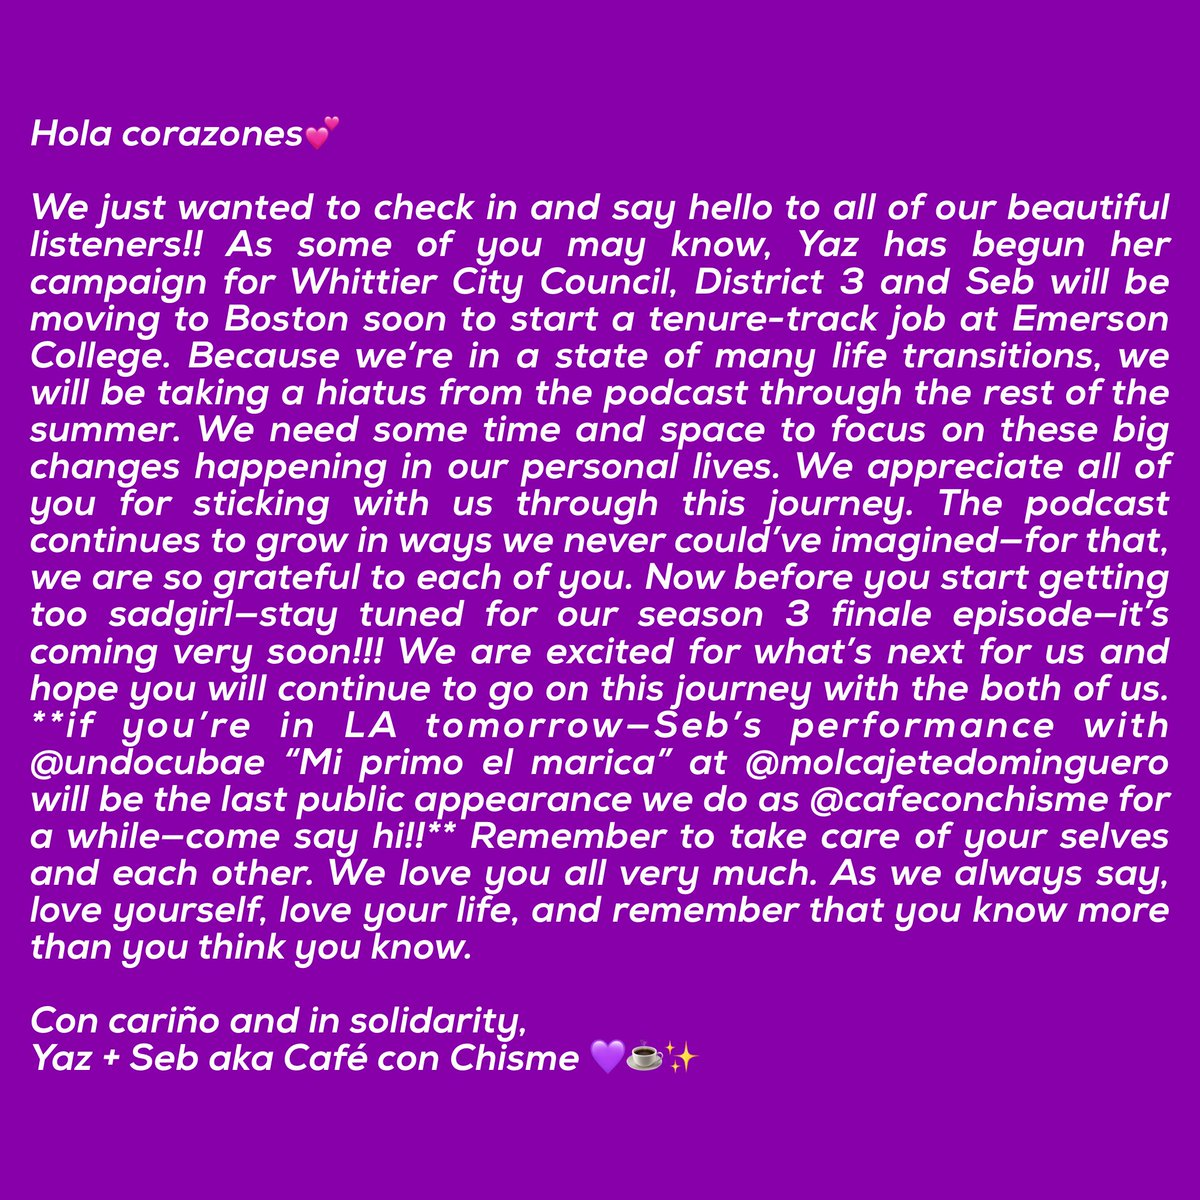 a message for our beautiful listeners💜☕️✨